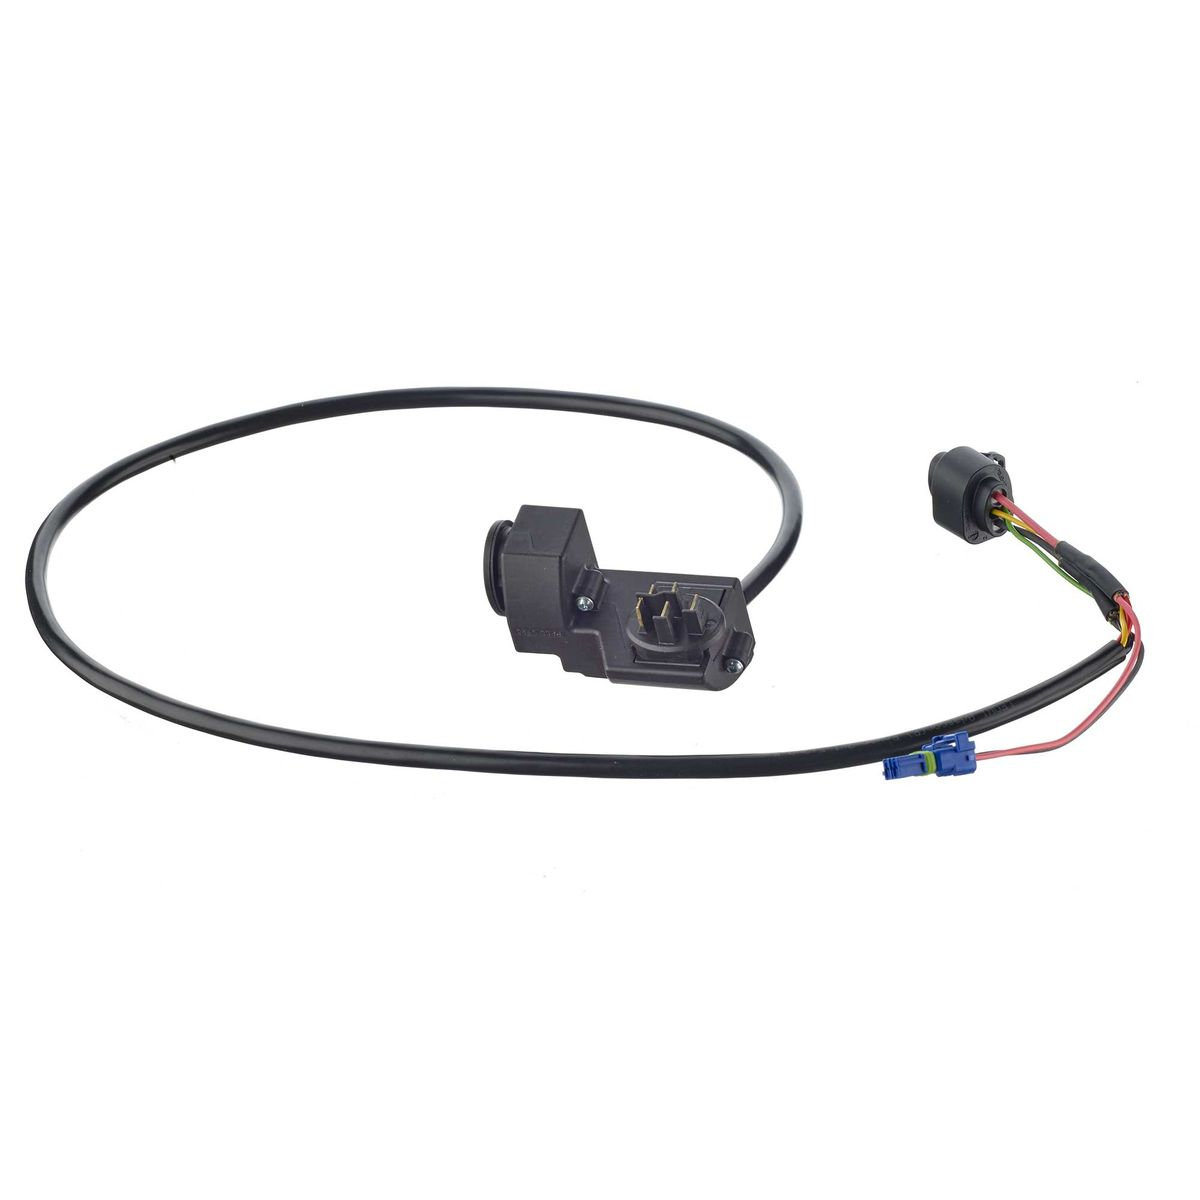 Cable for rack mount power pack Automatic Nuvinci 820mm